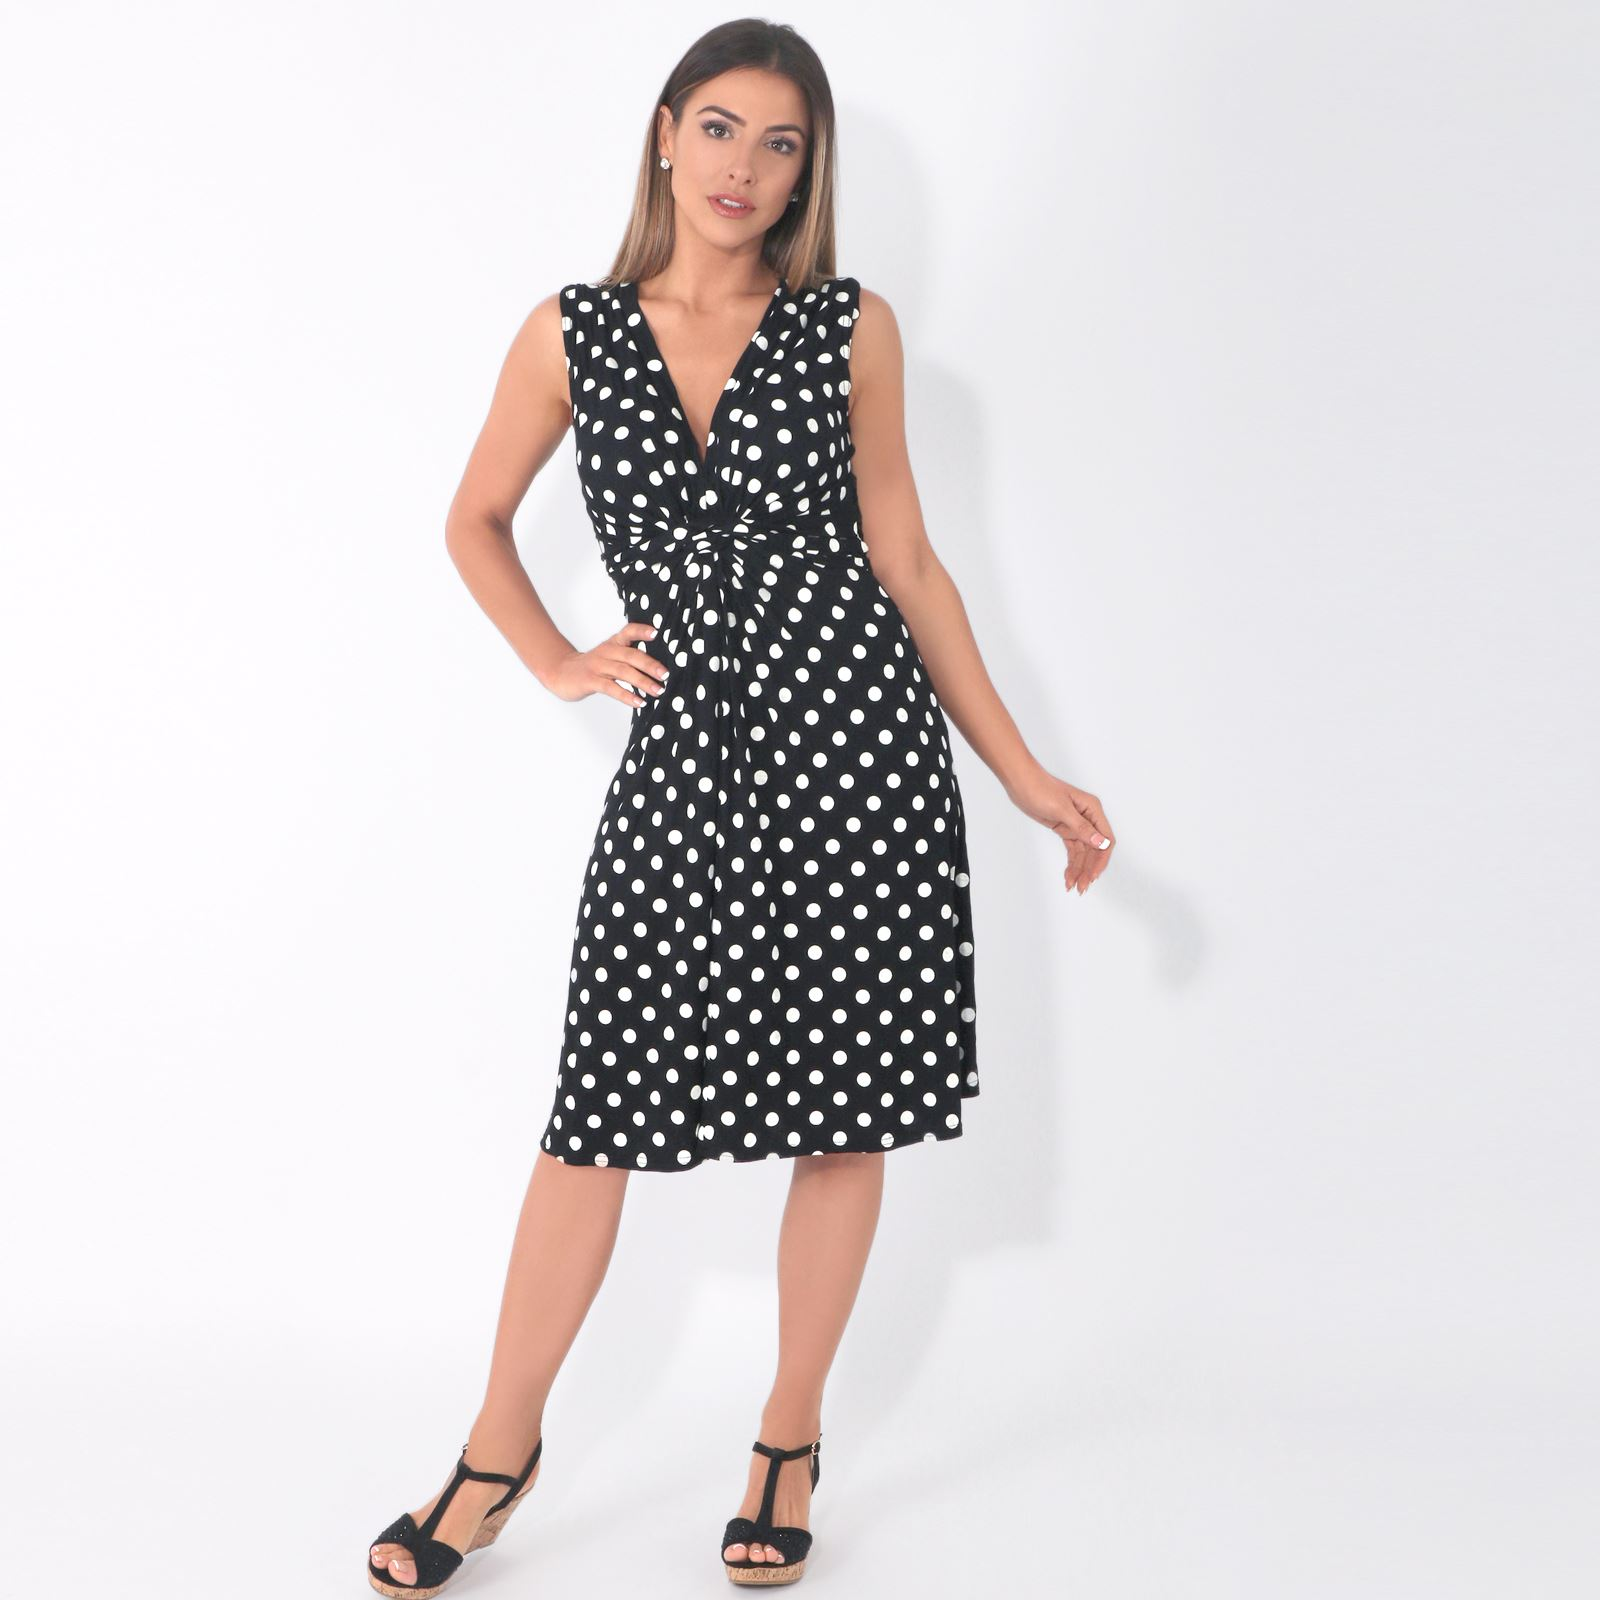 Womens-Dot-Print-Dress-Retro-Vintage-Pleated-Mini-V-Neck-Wrap-Top-Swing-Party thumbnail 3